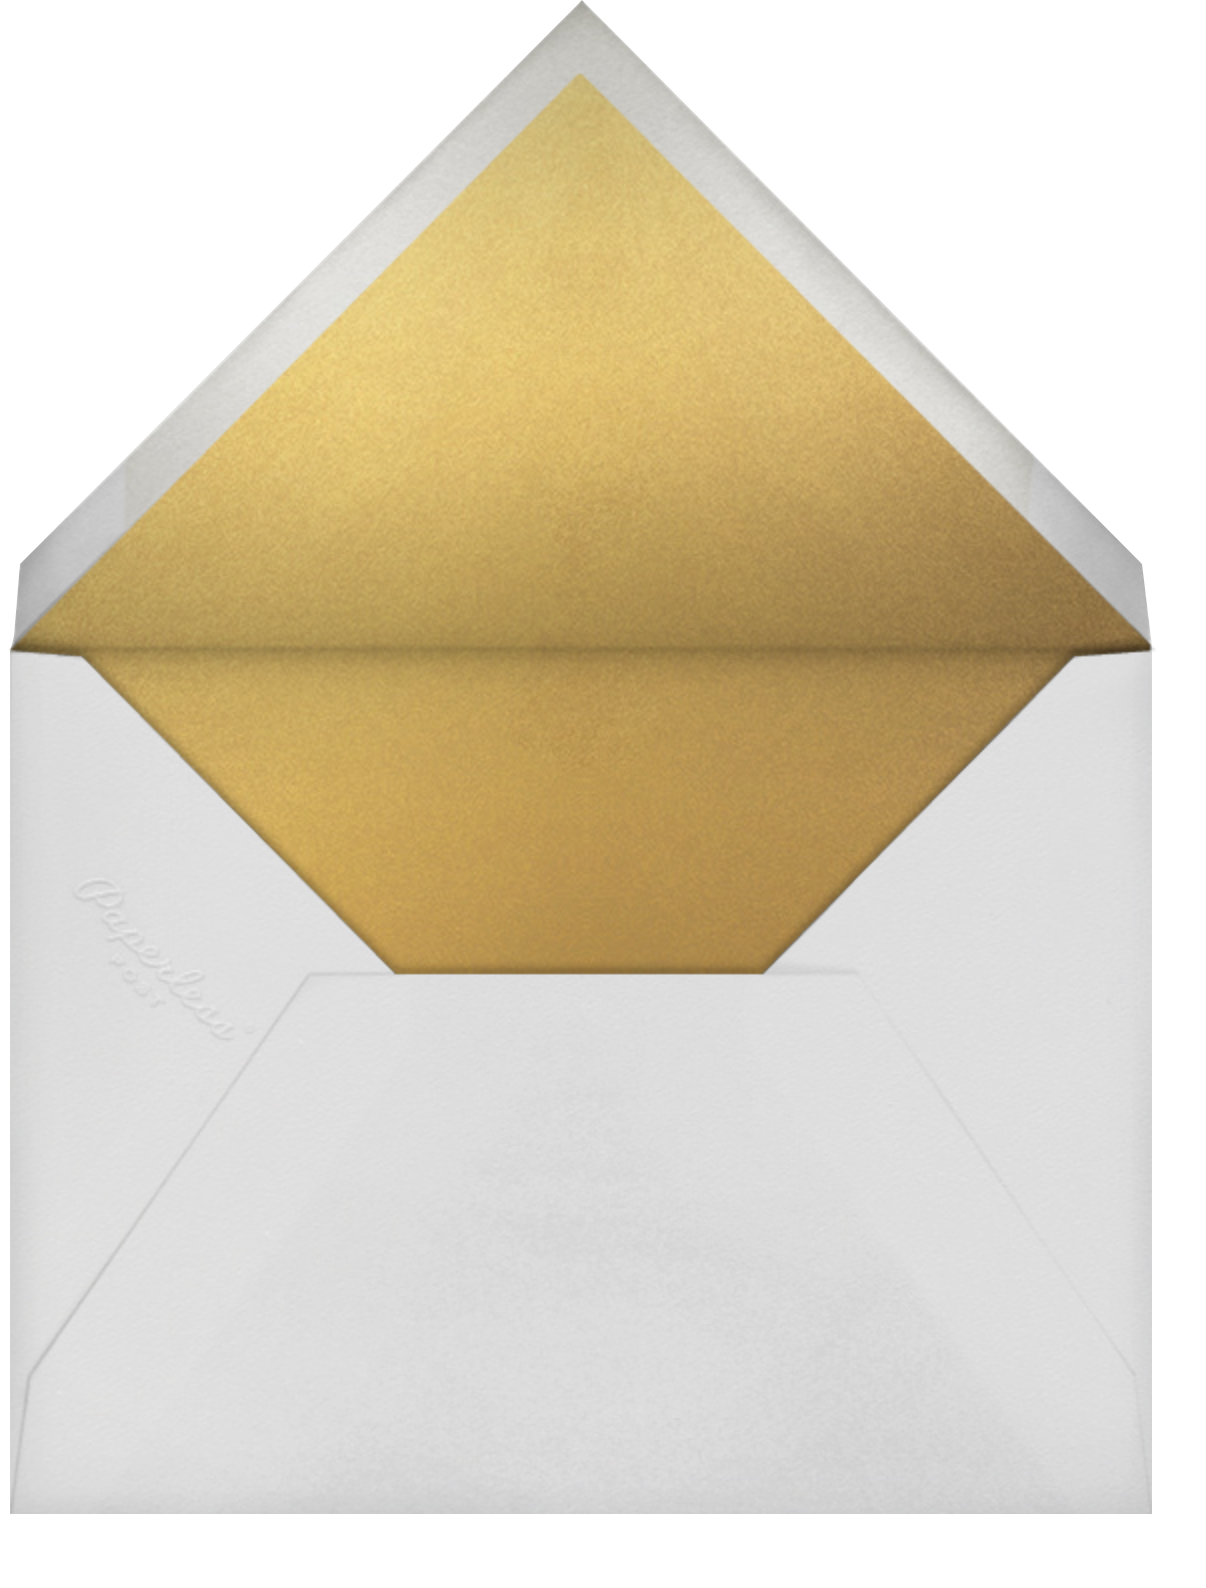 Shining Gold - Birthday - Paperless Post - Adult birthday - envelope back